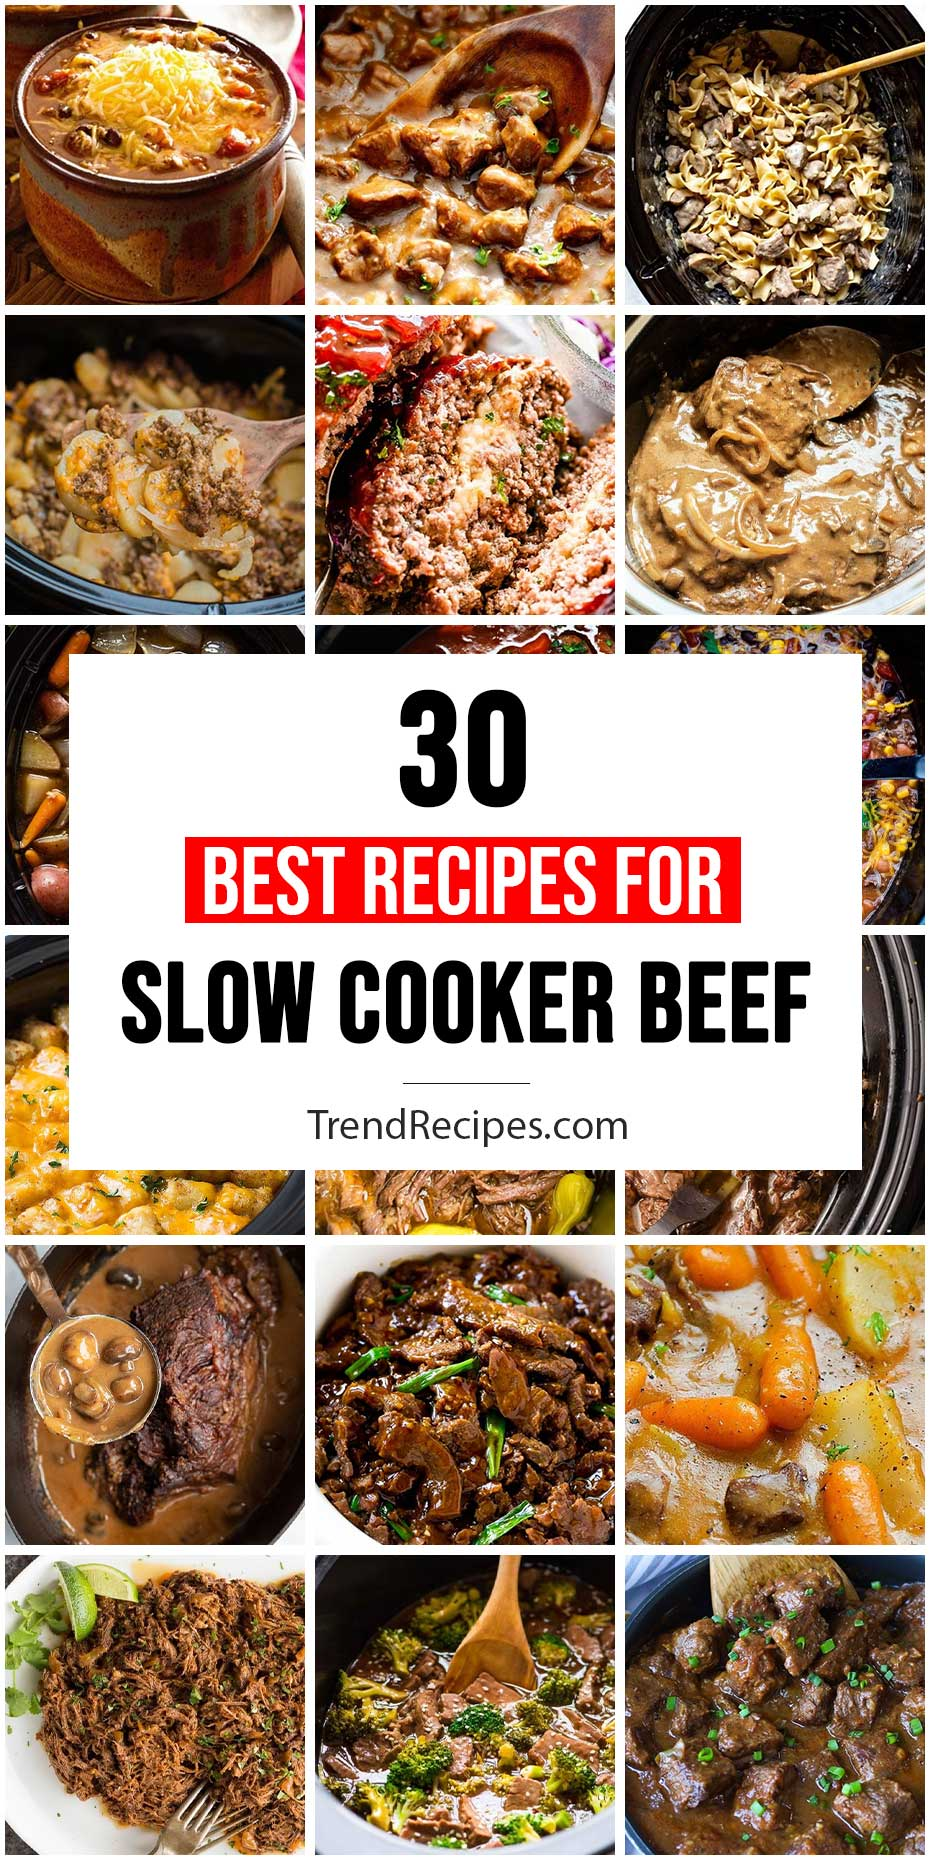 30 Best Slow Cooker Beef Dishes For Dinner